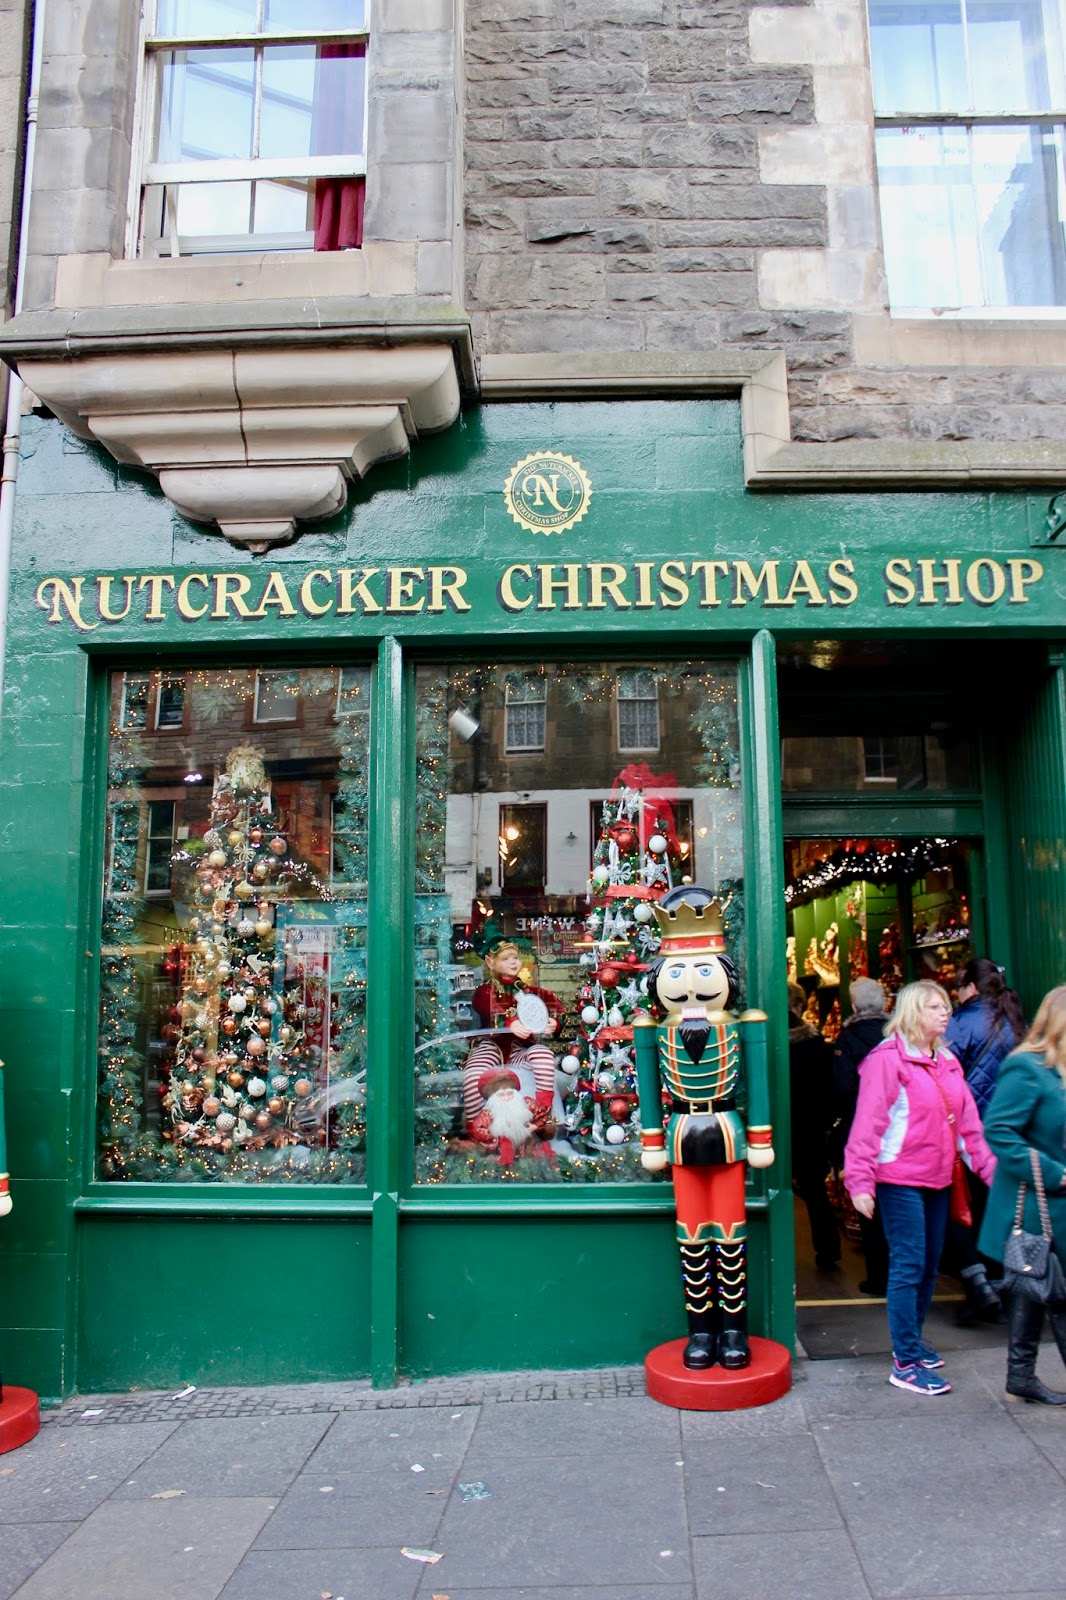 Nutcracker Christmas Shop in Edinburgh